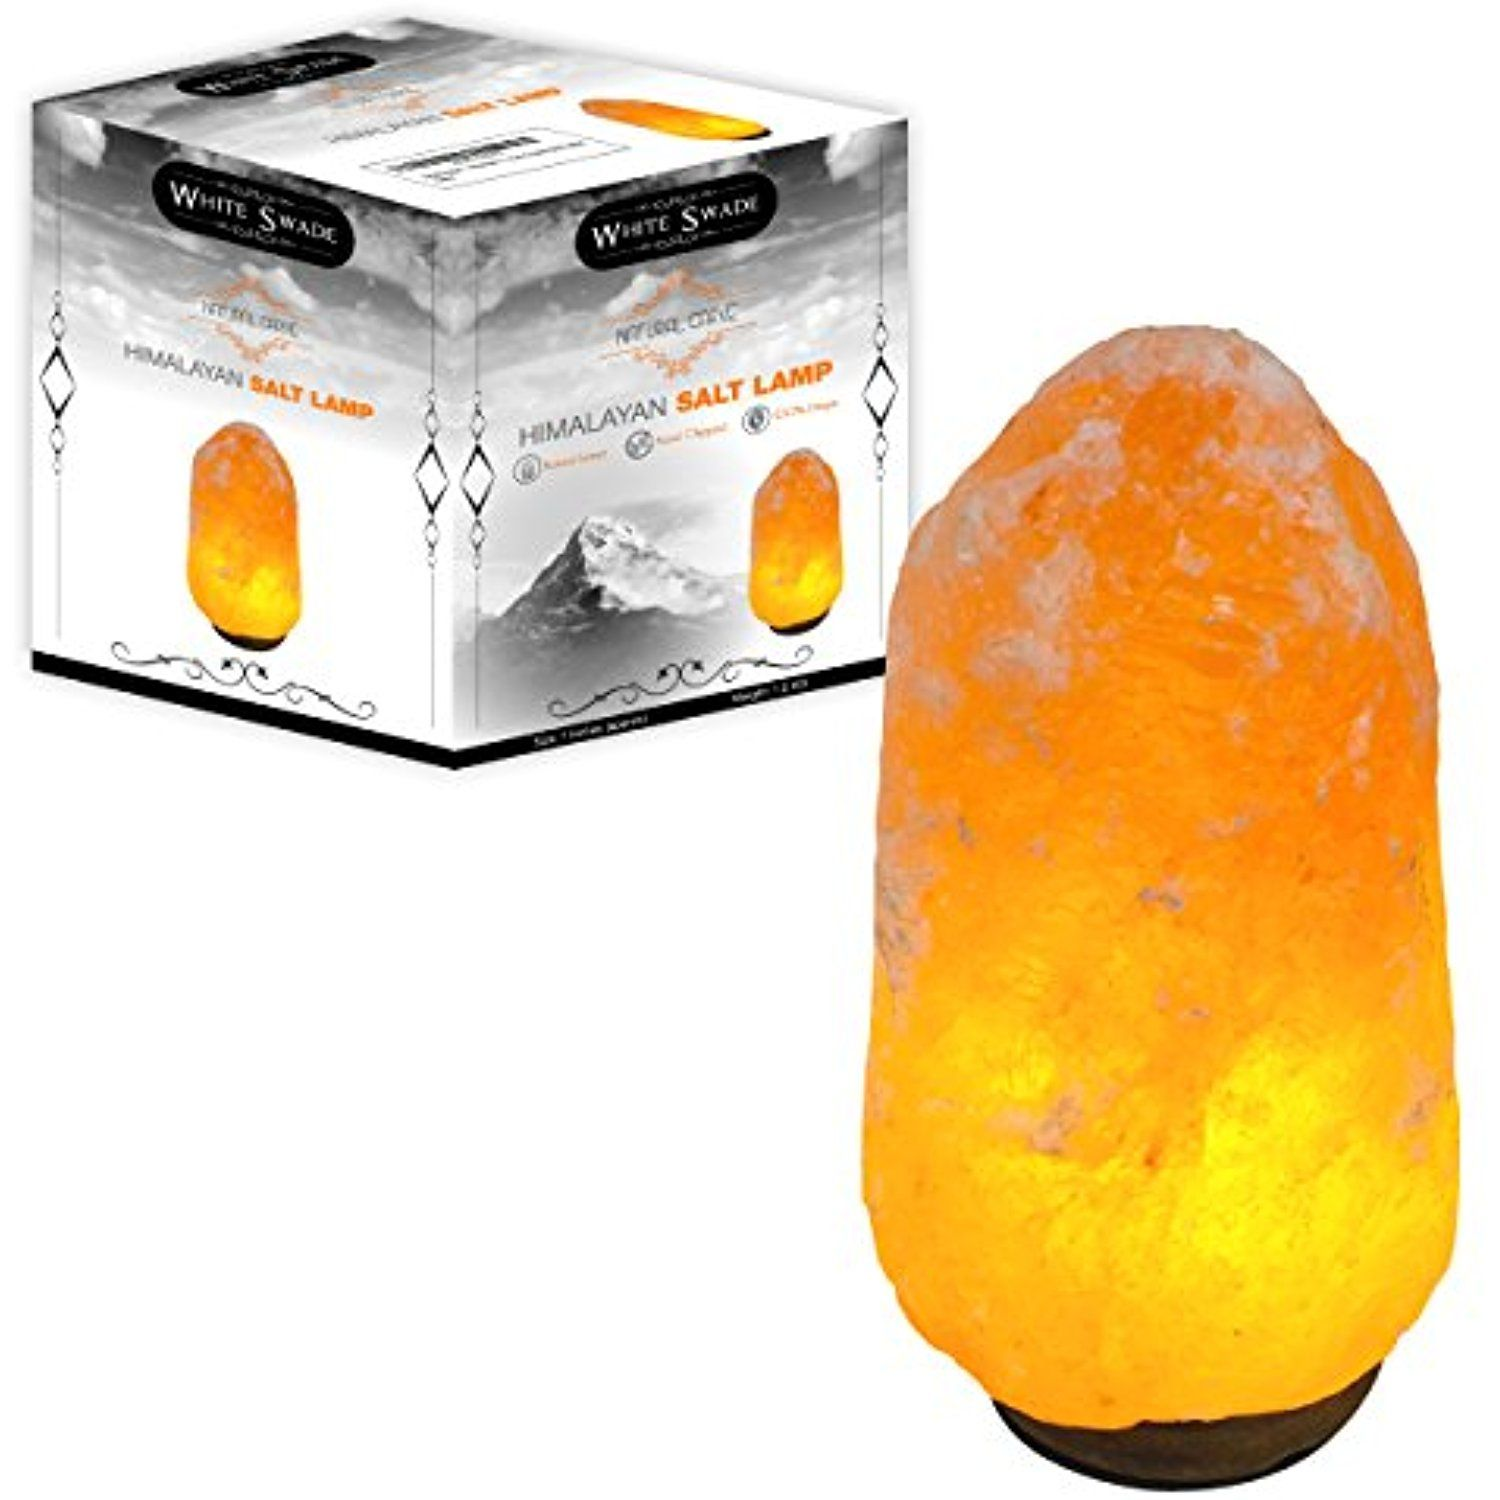 "Genuine Himalayan Salt Lamp Gorgeous Whiteswade 7"" Himalayan Salt Lamp With Dimmer Switch Genuine Neem Inspiration"